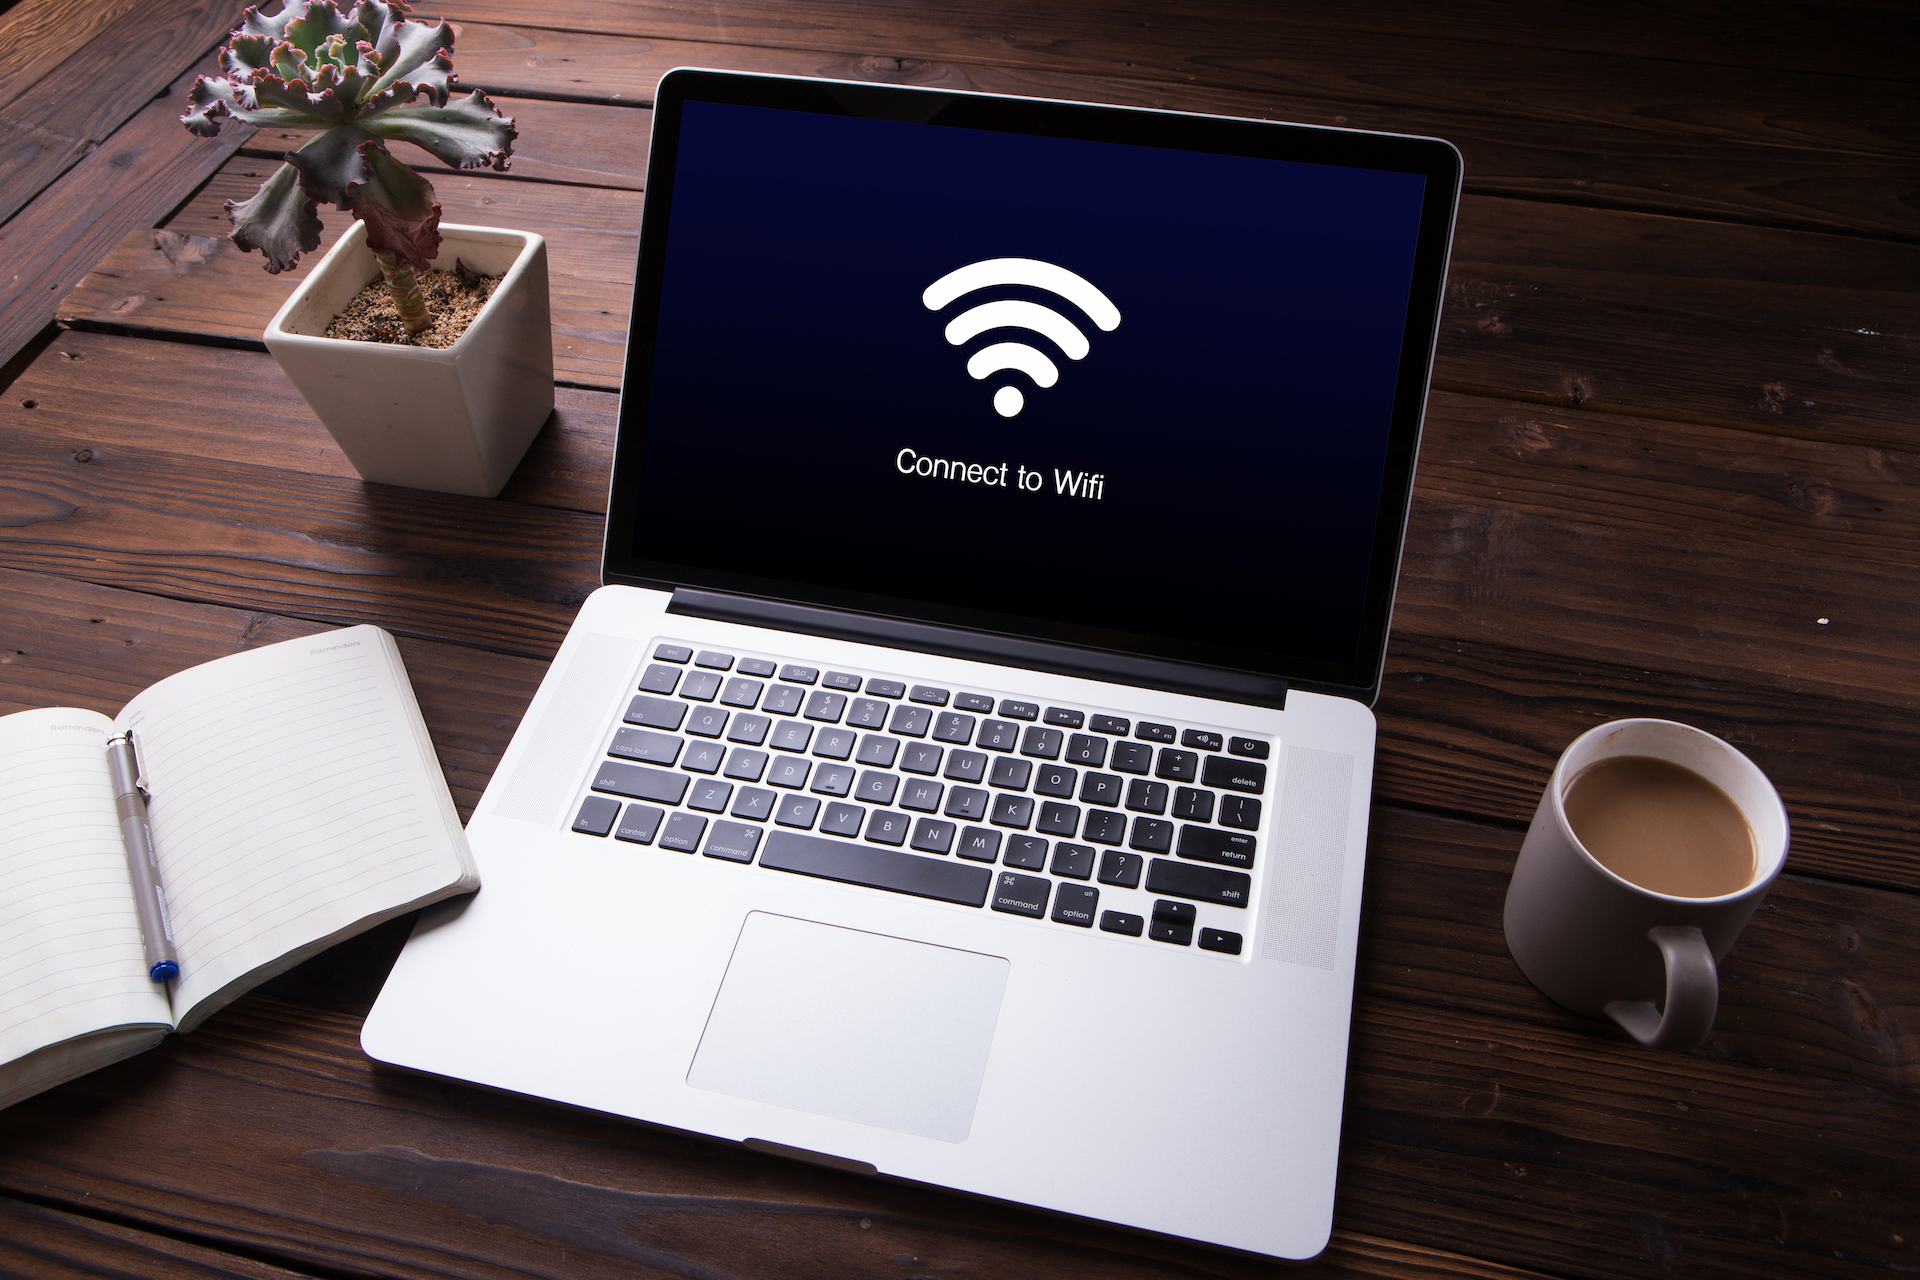 New Malware Uses WiFi BSSID to Determine the Victim's Location